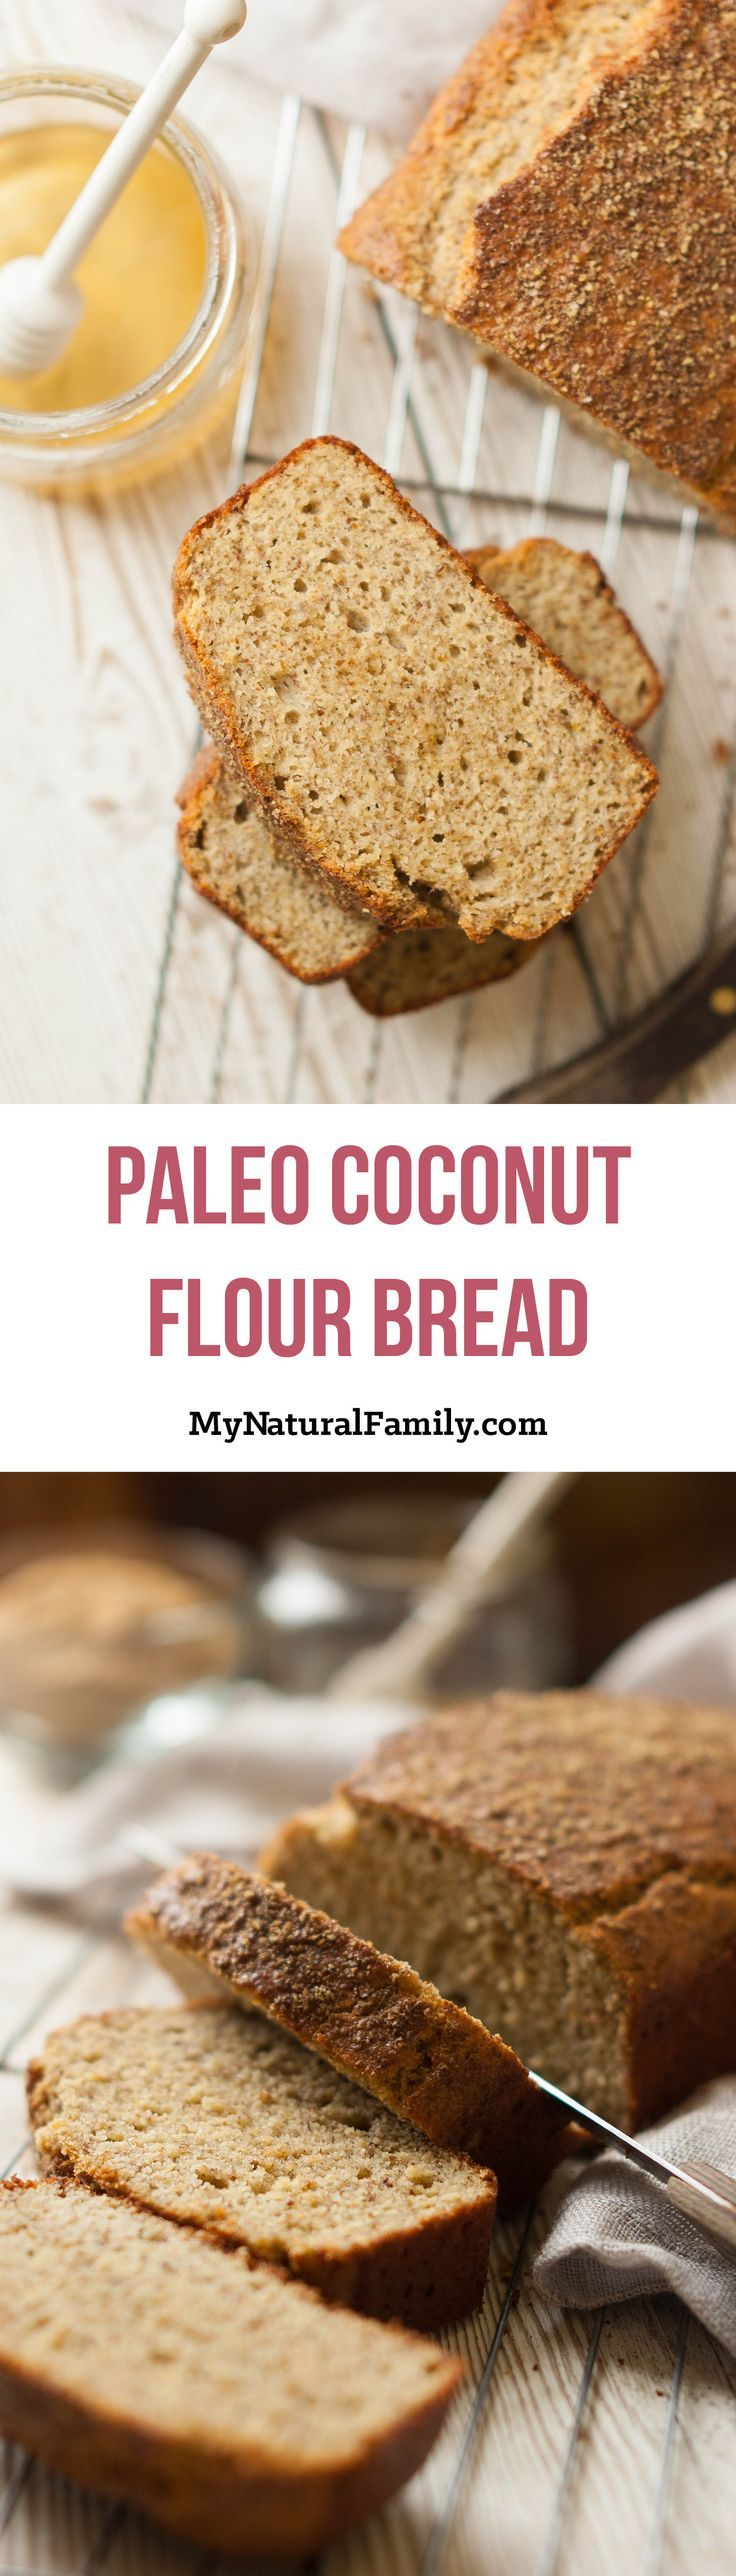 Paleo Coconut Flour Bread Recipe